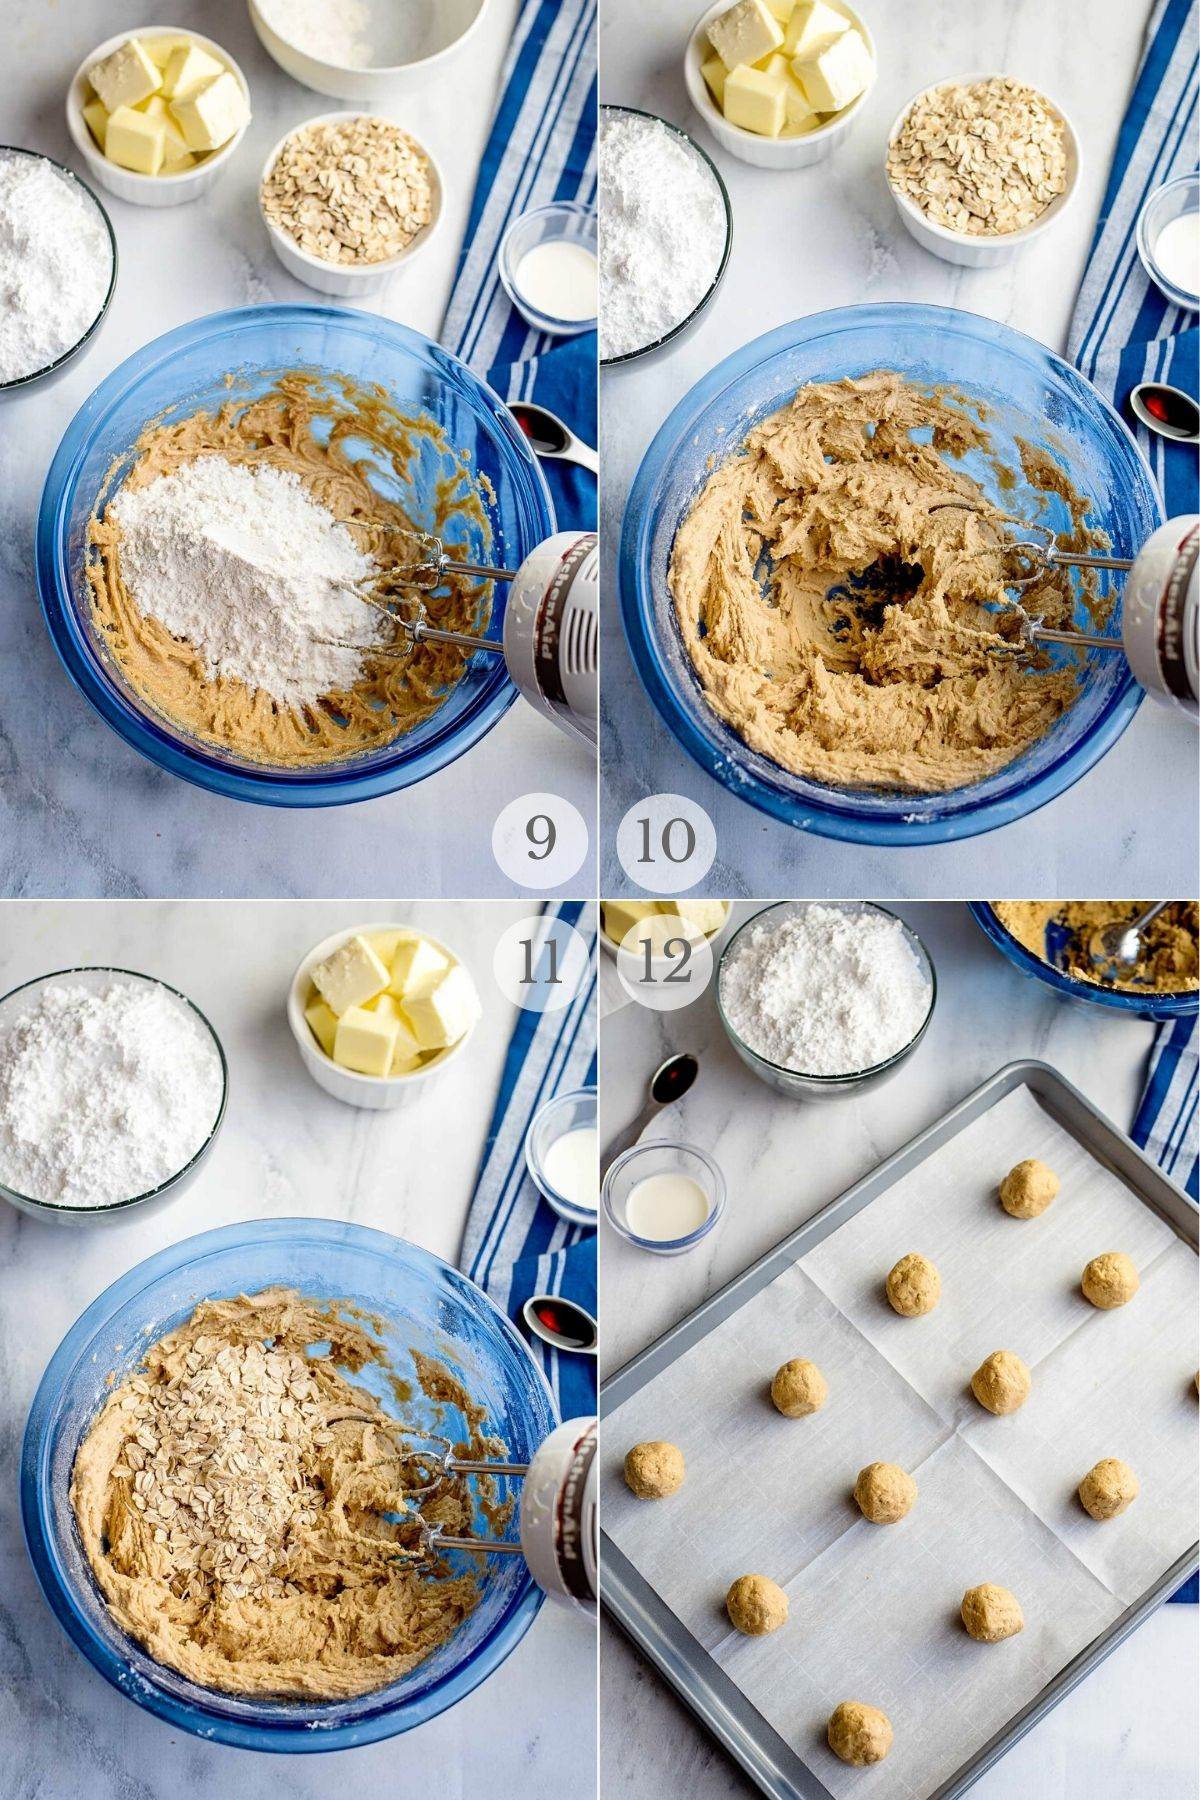 peanut butter oatmeal cookies recipes steps 9-12a